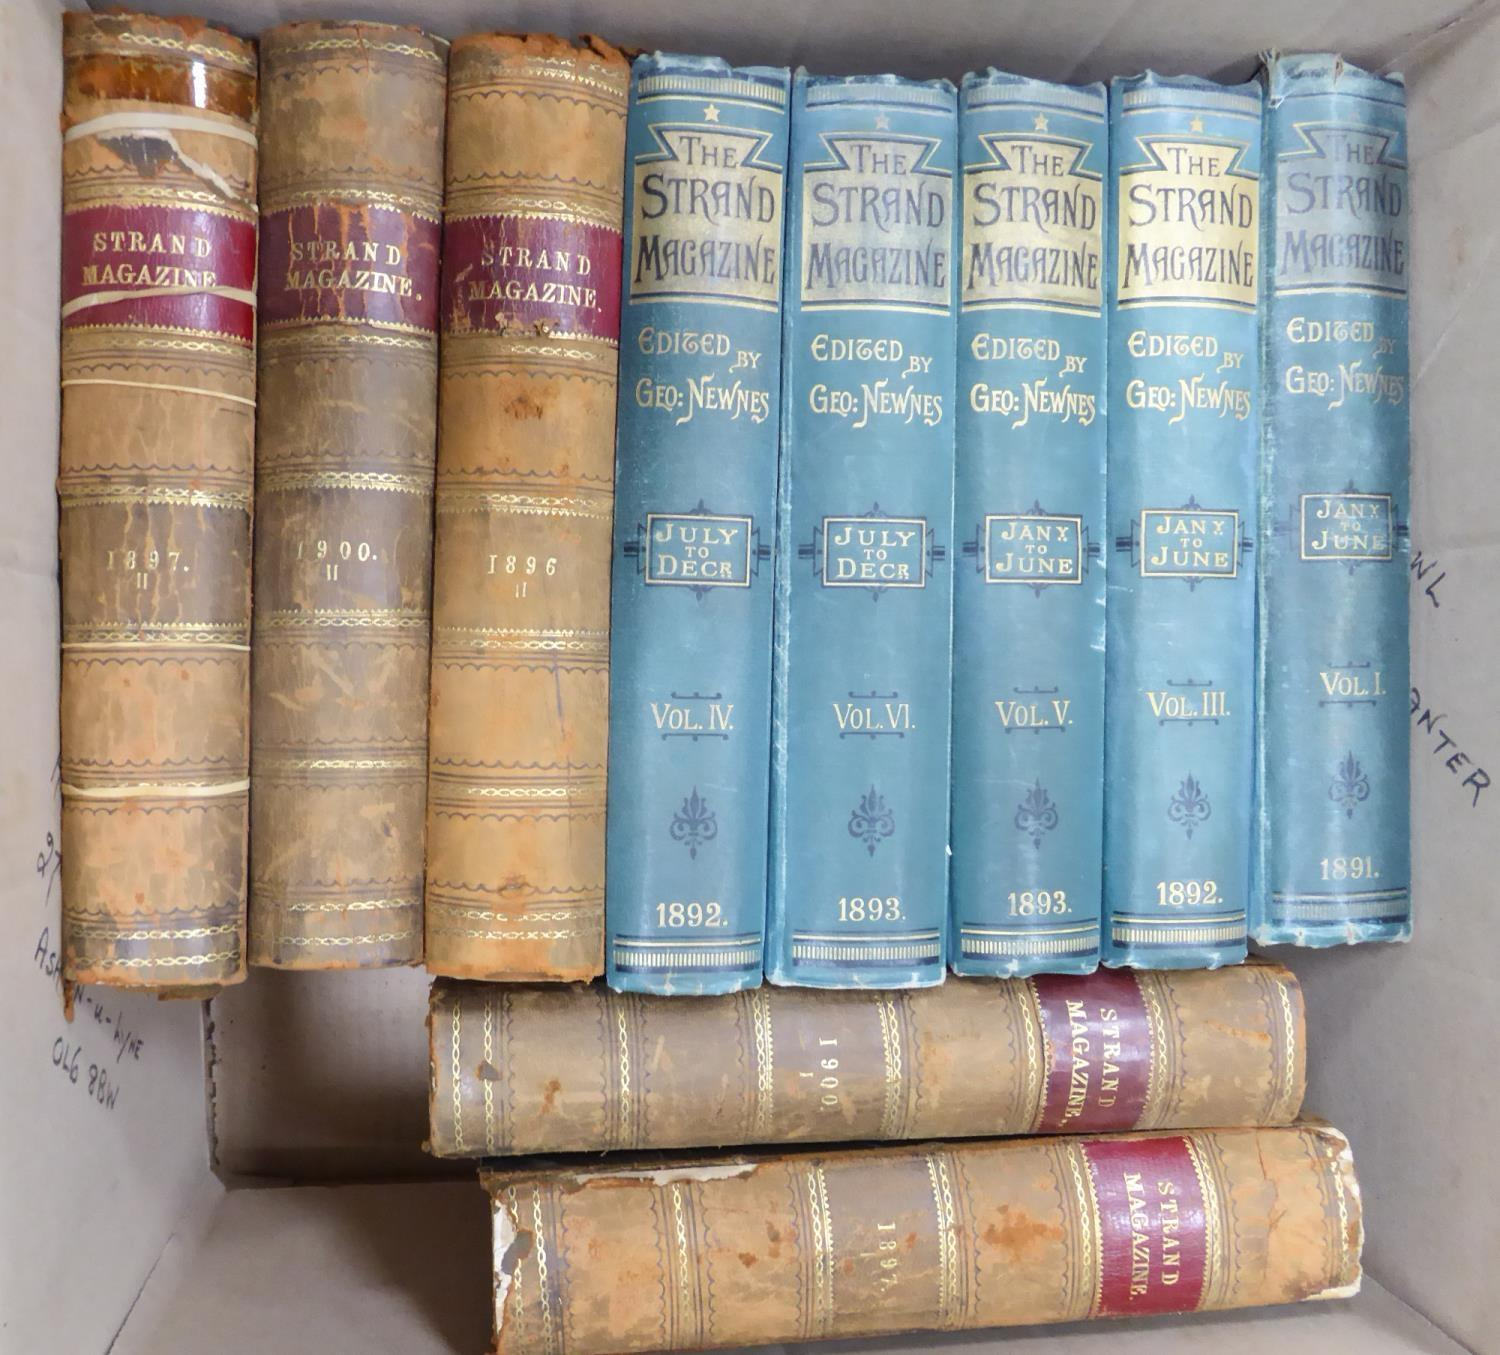 Lot 131 - SHERLOCK HOLMES - THE STRAND MAGAZINE George Newnes Volume I, III, IV, V, VI (1891 -93) covering